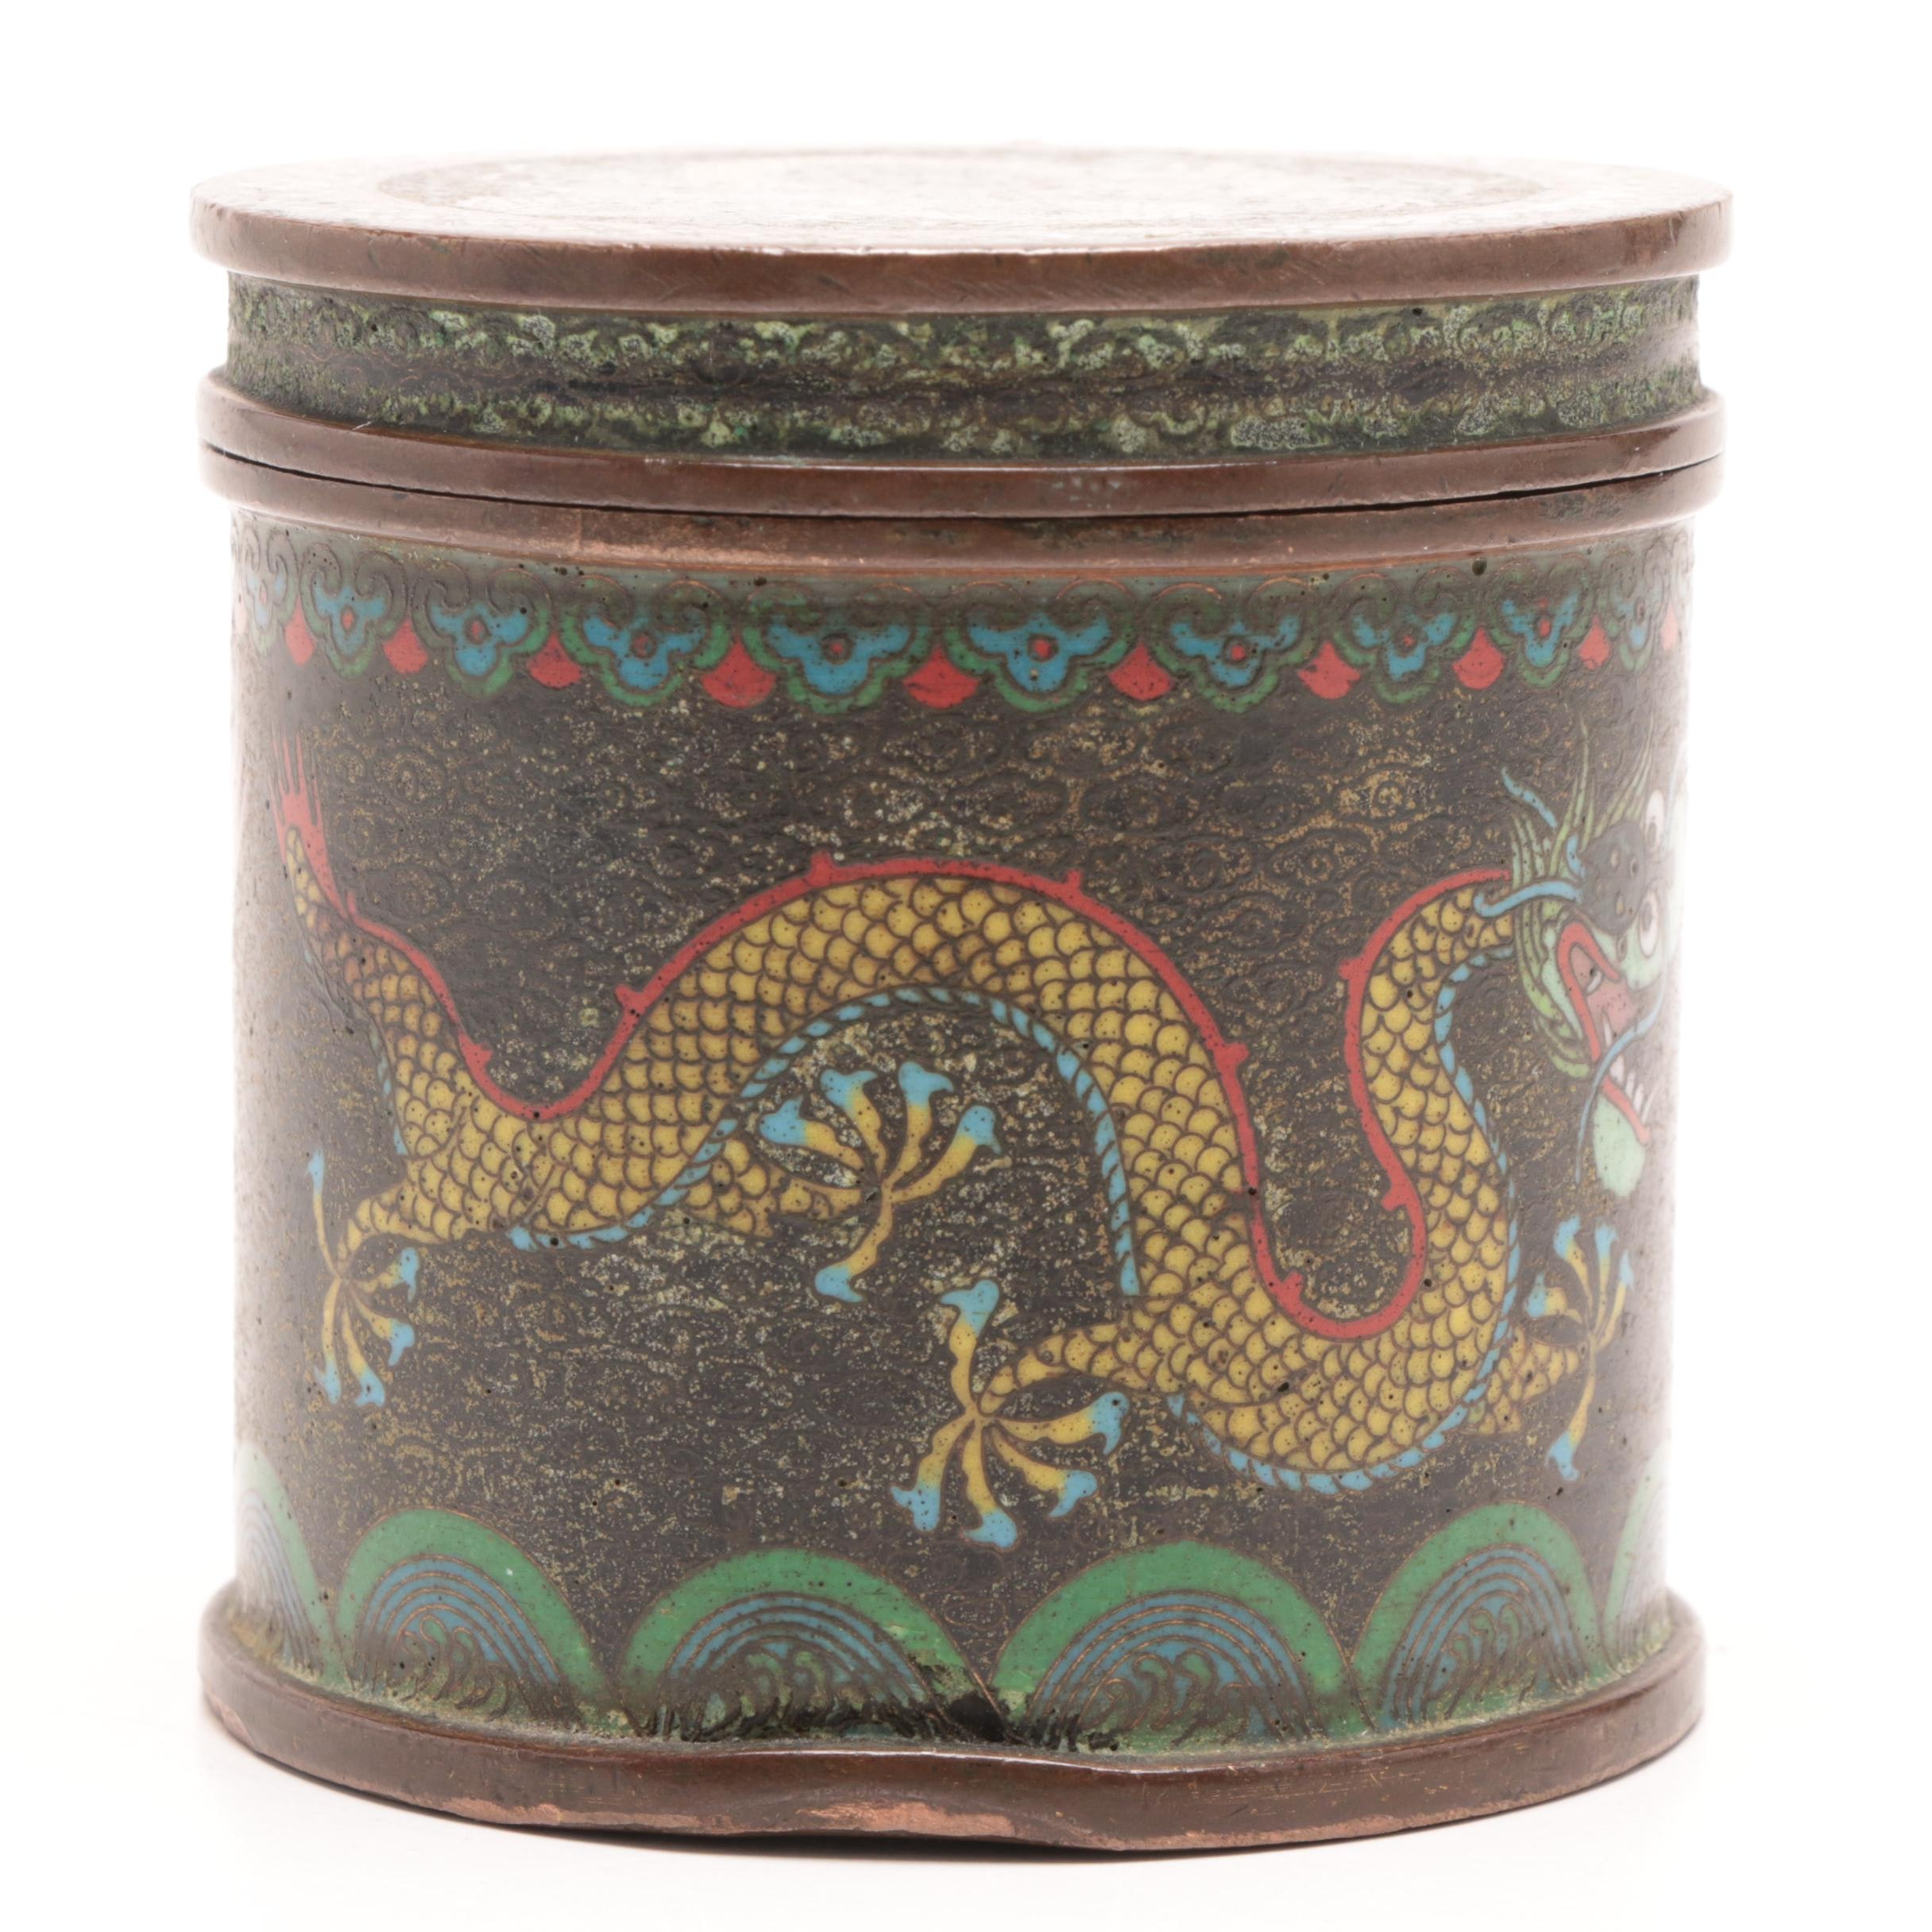 Chinese Cloisonné Tea Caddy with Dragon Motif, Qing Dynasty